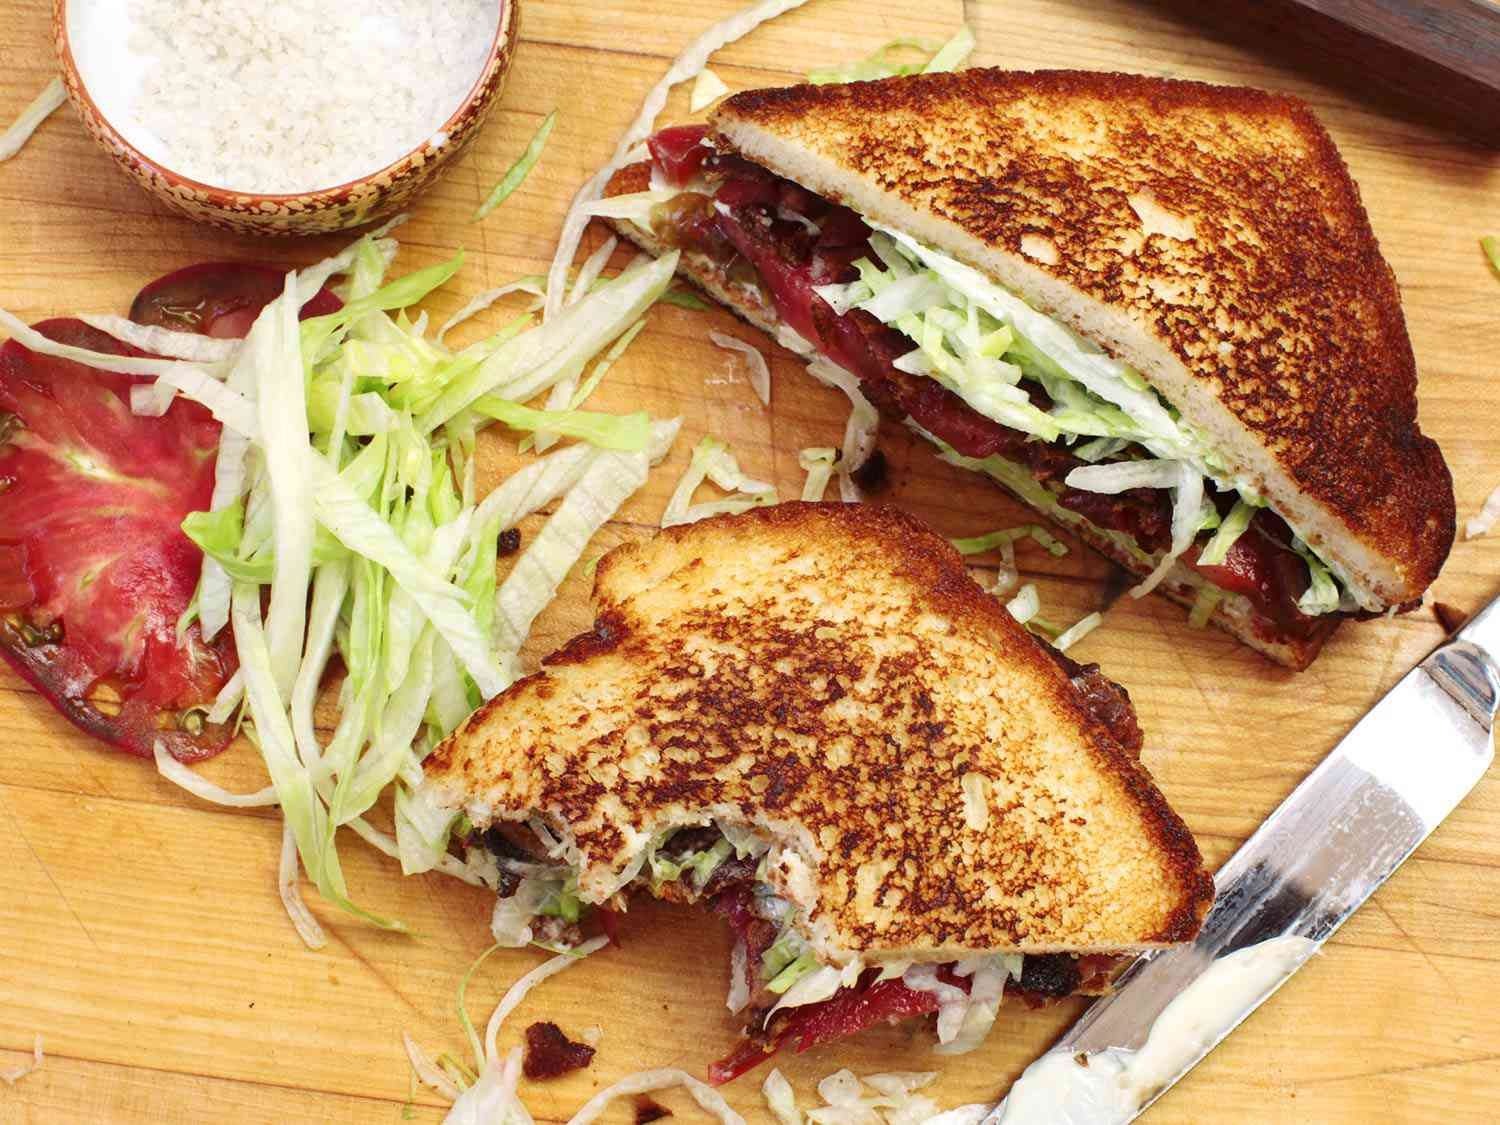 A BLT sandwich cut in half diagonally, one half with bites taken out, with a pile of shredded lettuce and a tomato slice nearby